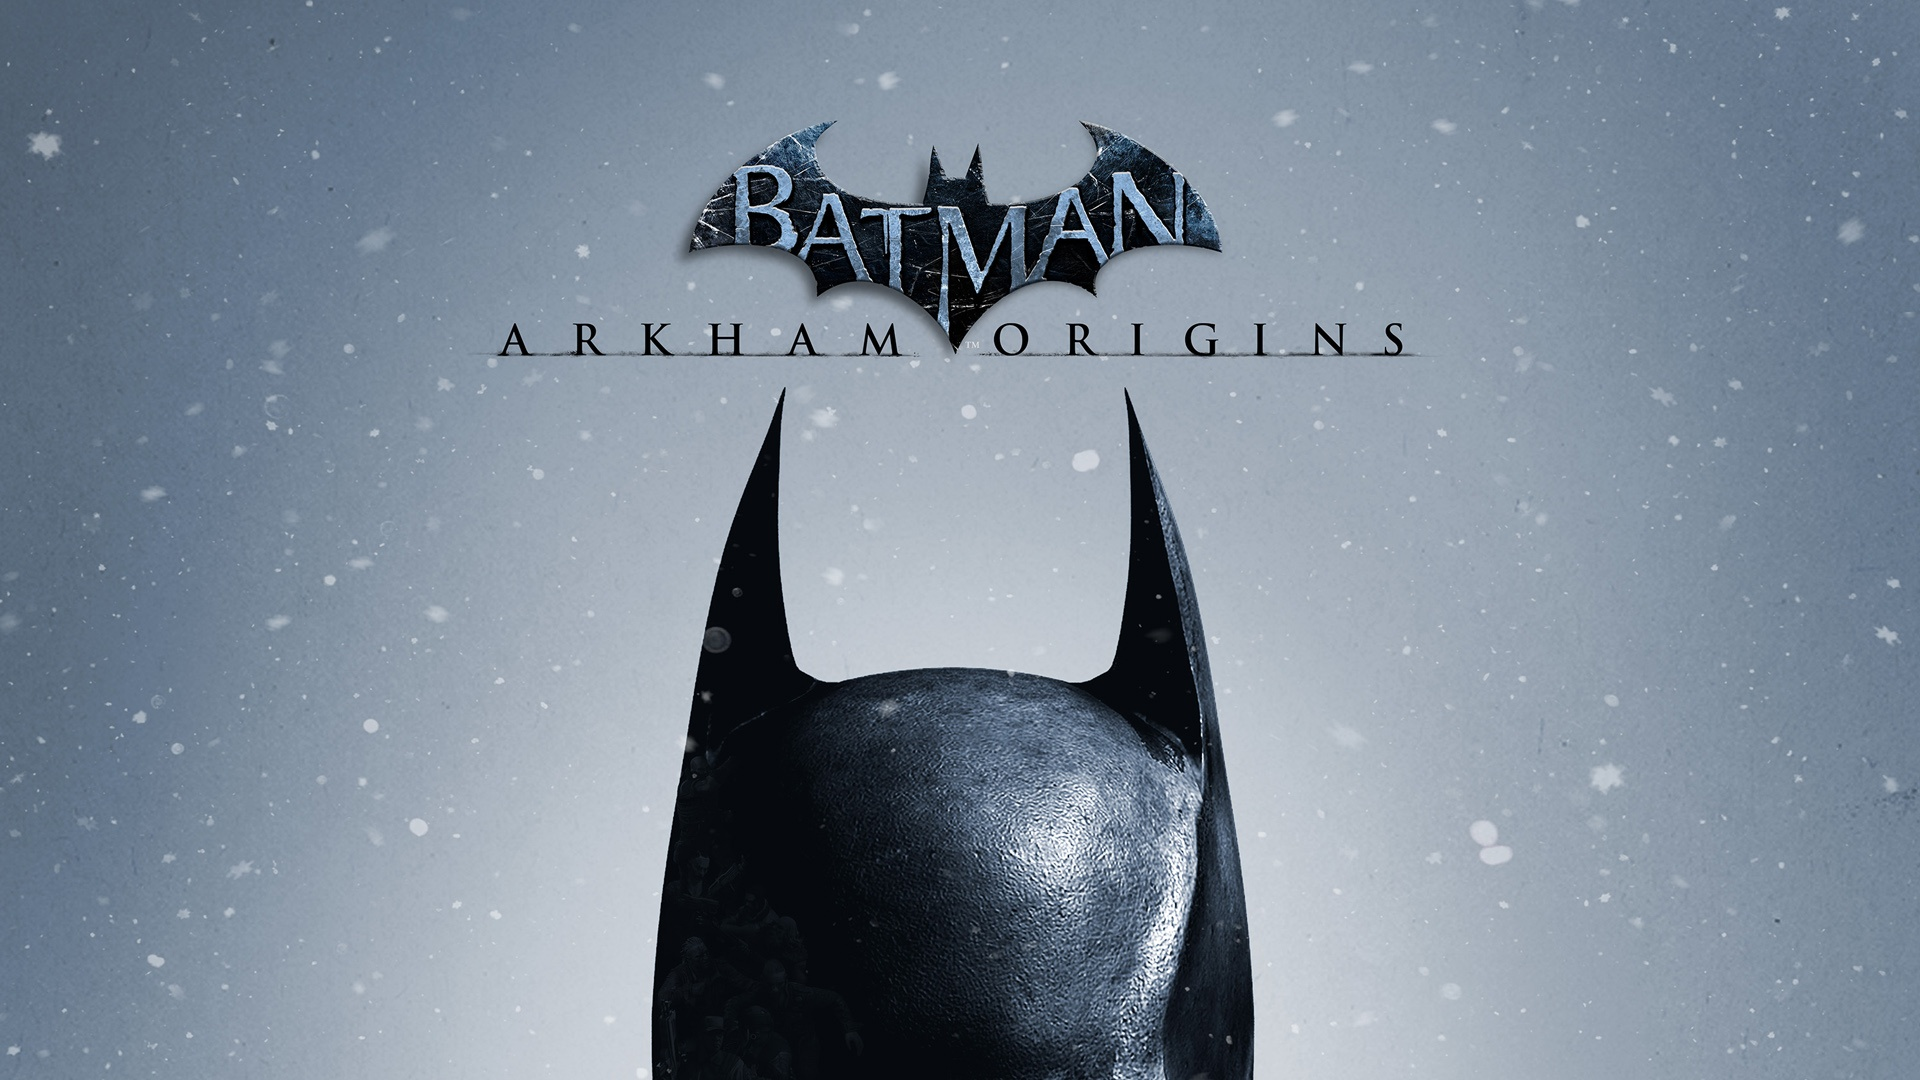 NYCC 2013: What We Learned About Batman Arkham Origins